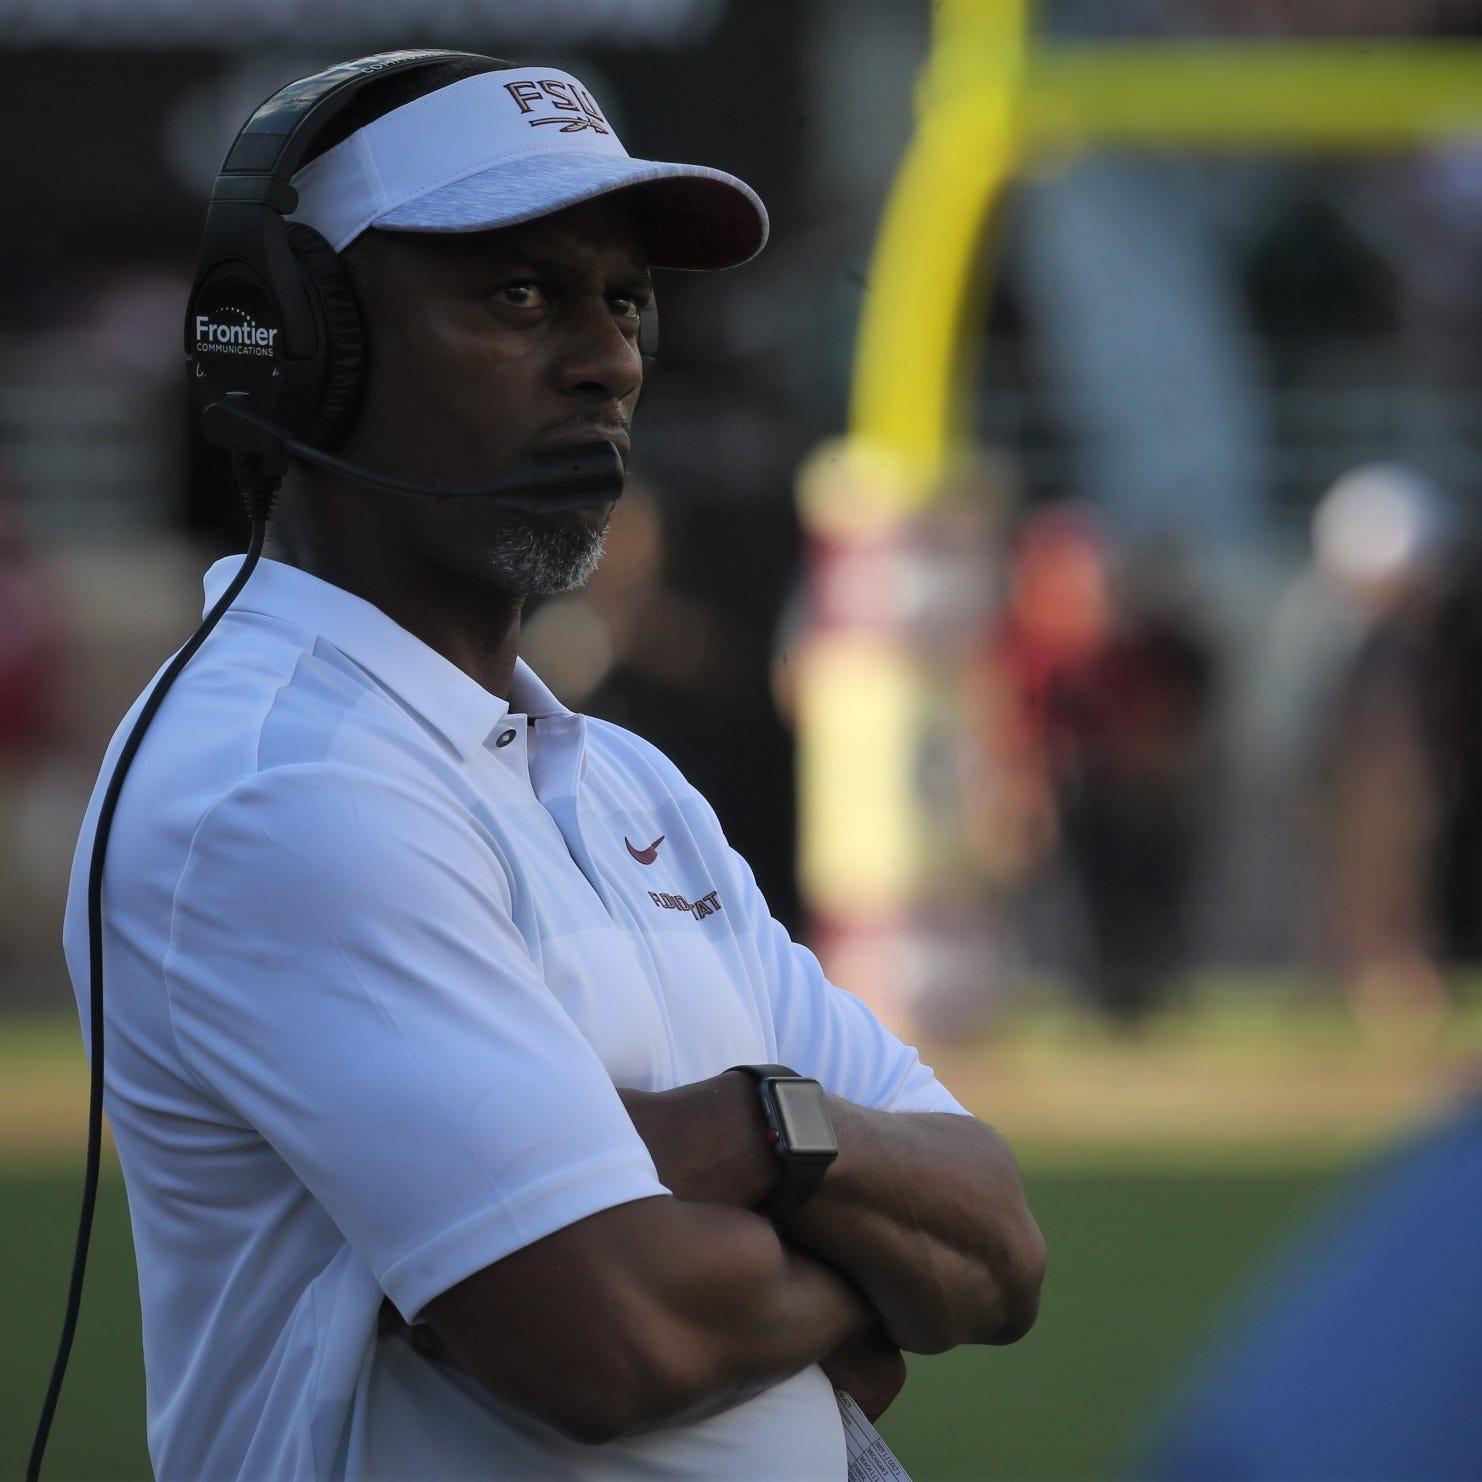 Florida State football head coach Willie Taggart watches his team during a game against Wake Forest at Doak Campbell Stadium on Saturday, Oct. 20, 2018.